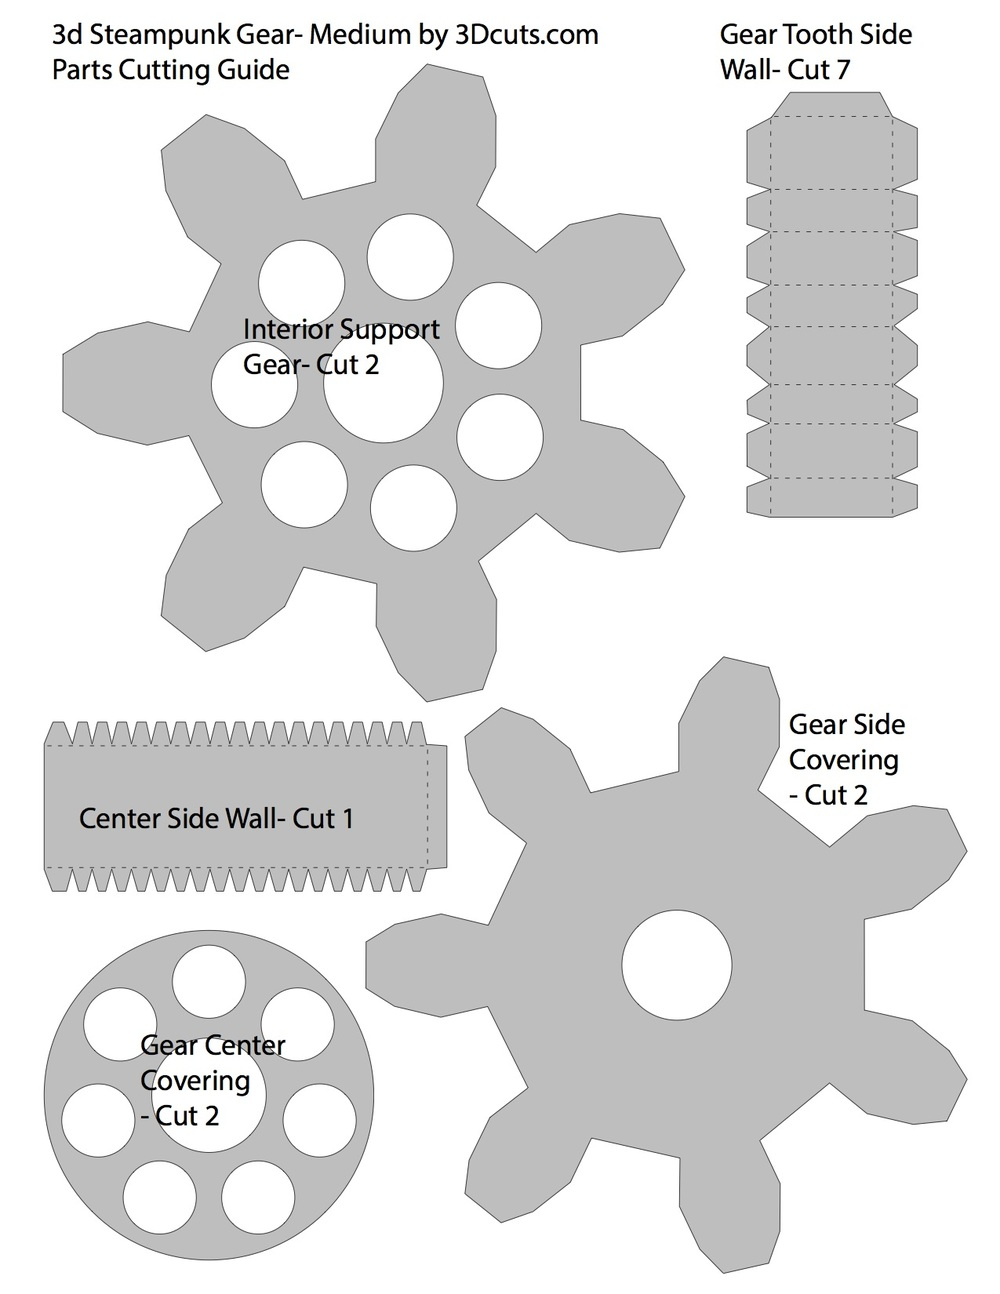 Number of each part to cut for medium 7 toothed gear.